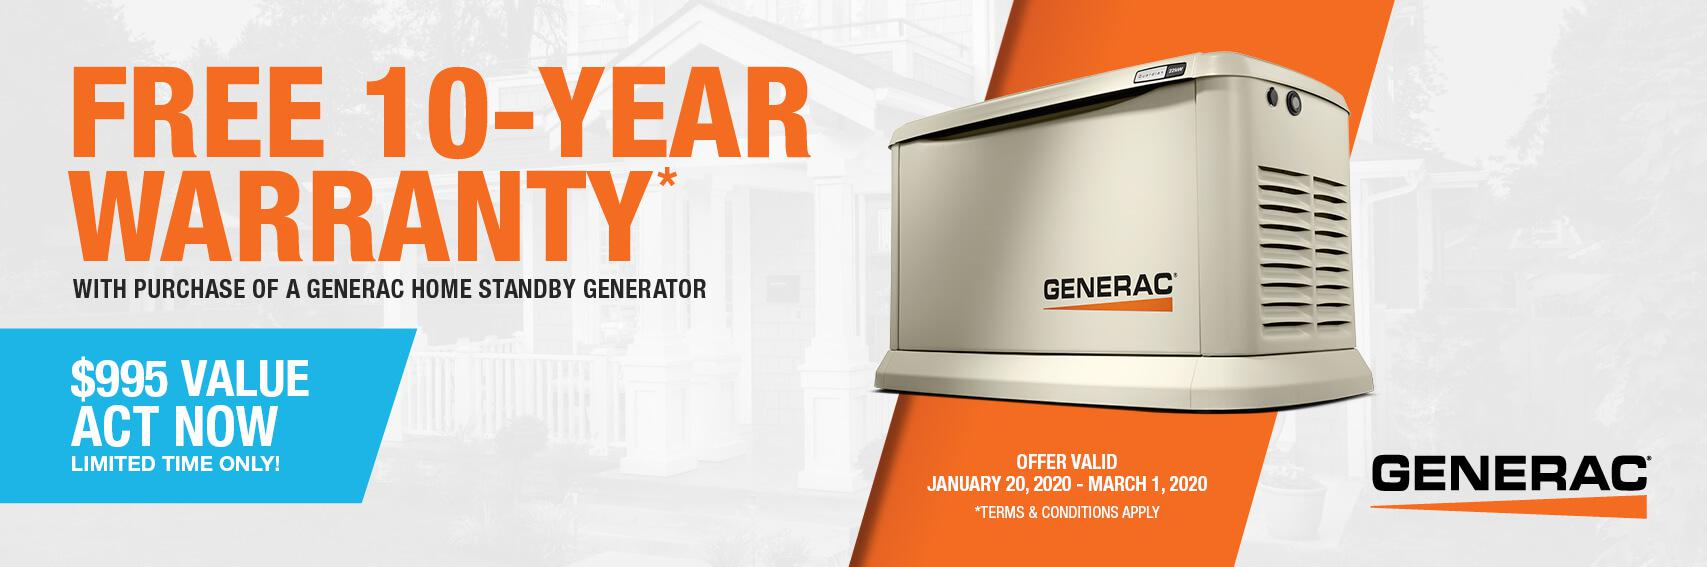 Homestandby Generator Deal | Warranty Offer | Generac Dealer | Baton Rouge, LA